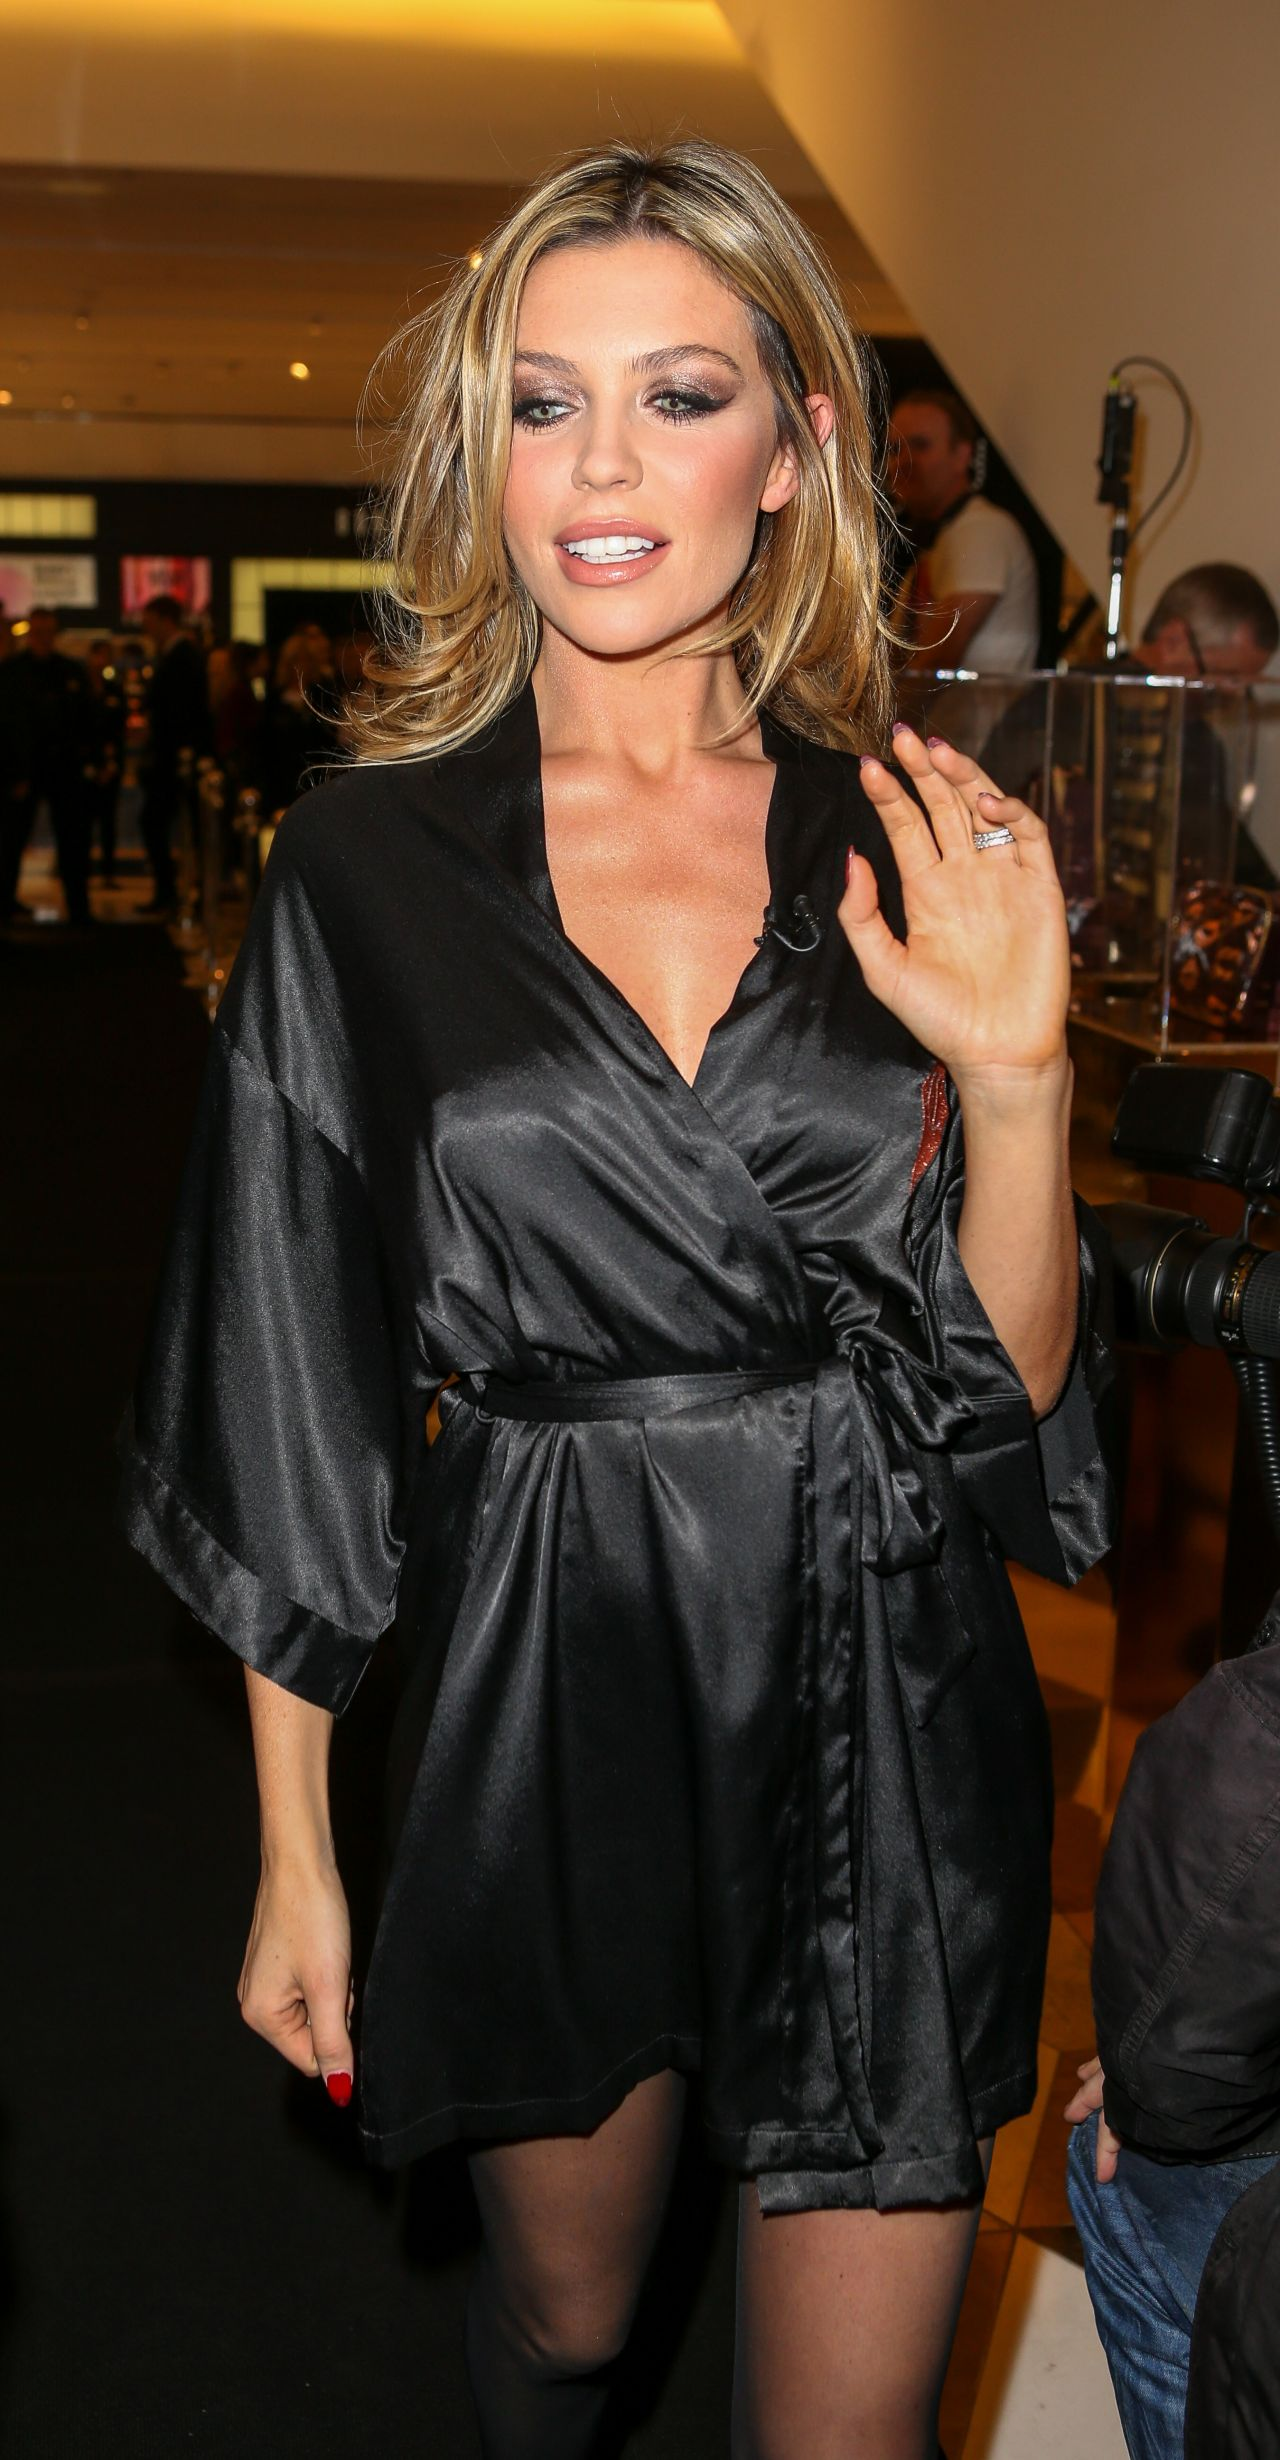 Abbey Clancy Style At The Selfridges Store In Manchester